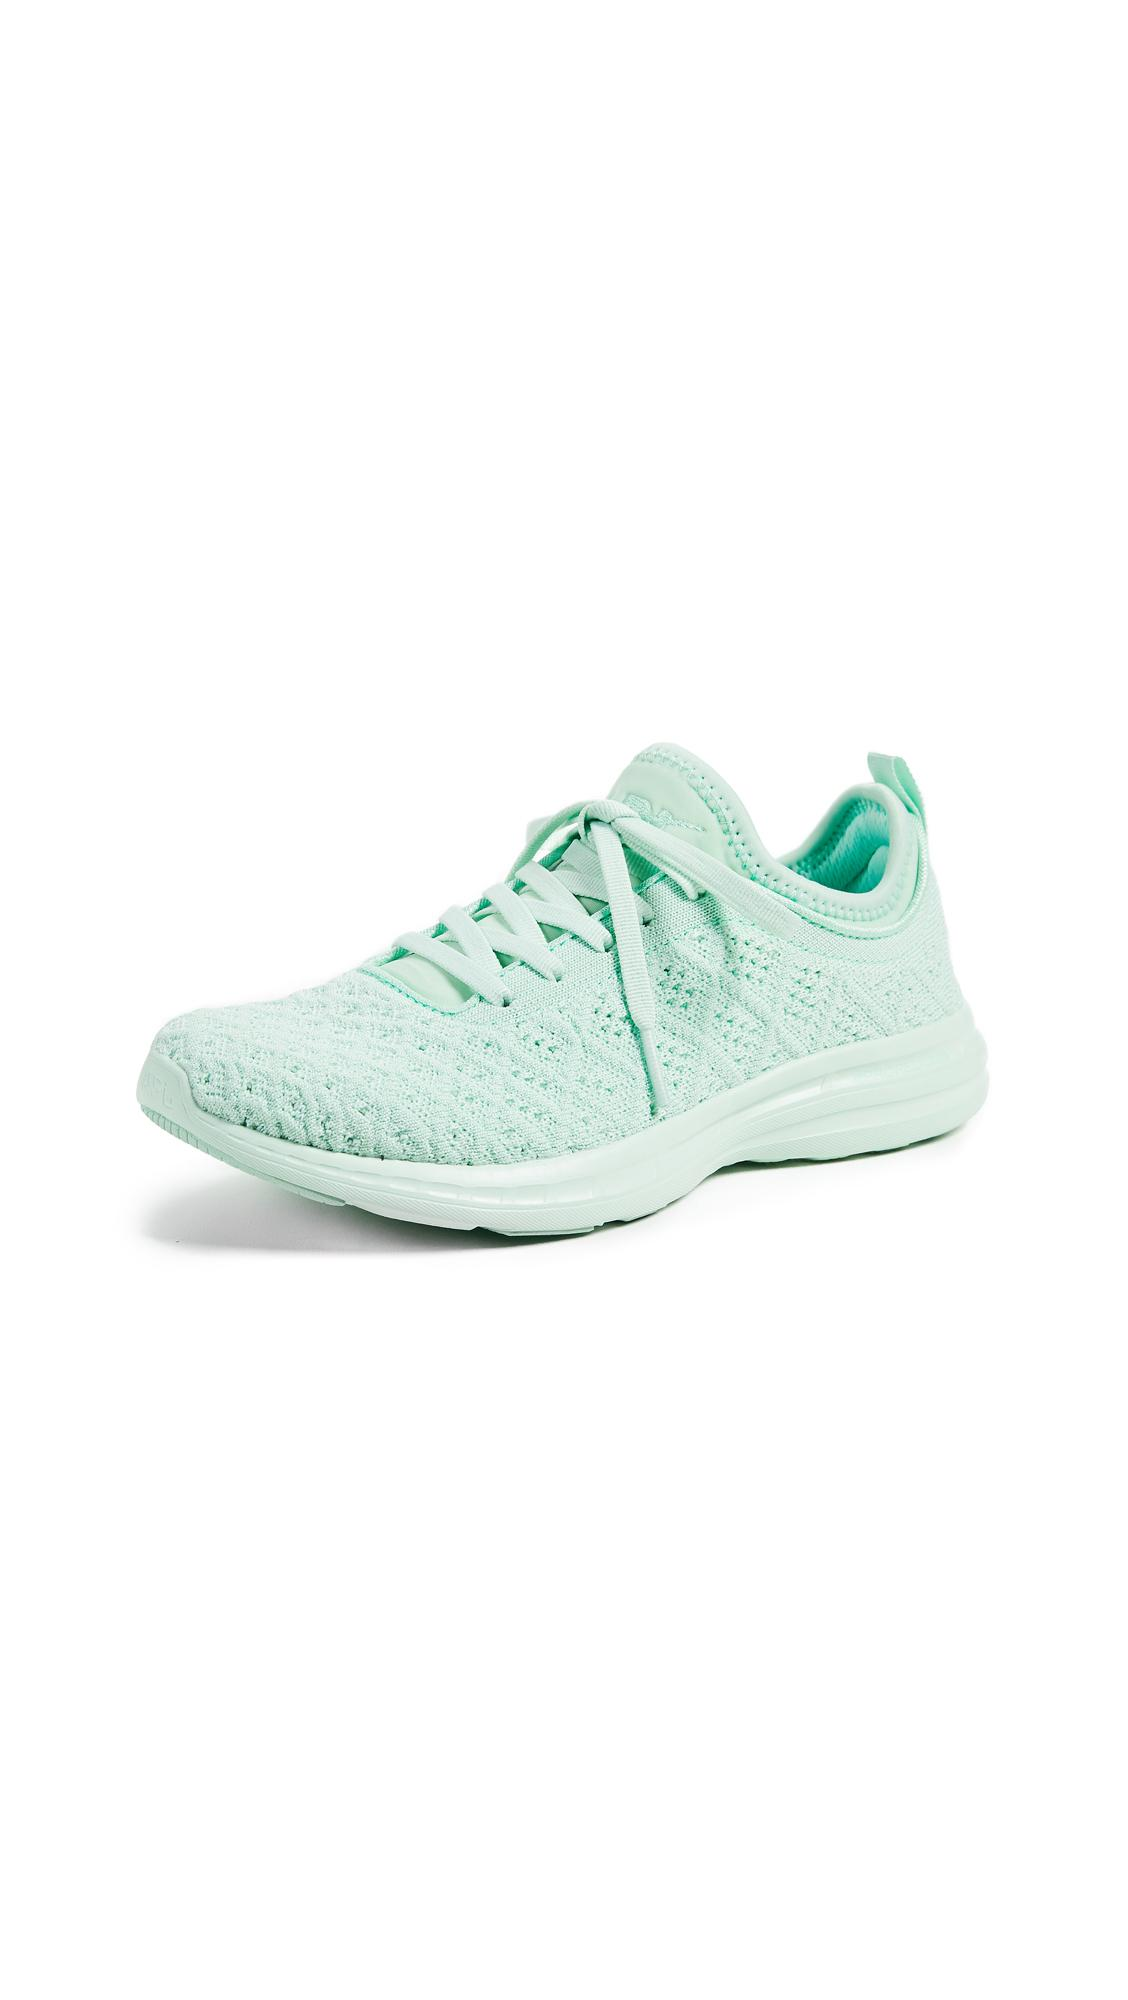 970382e40af9 Apl Athletic Propulsion Labs Techloom Phantom Sneakers In Faded Peppermint